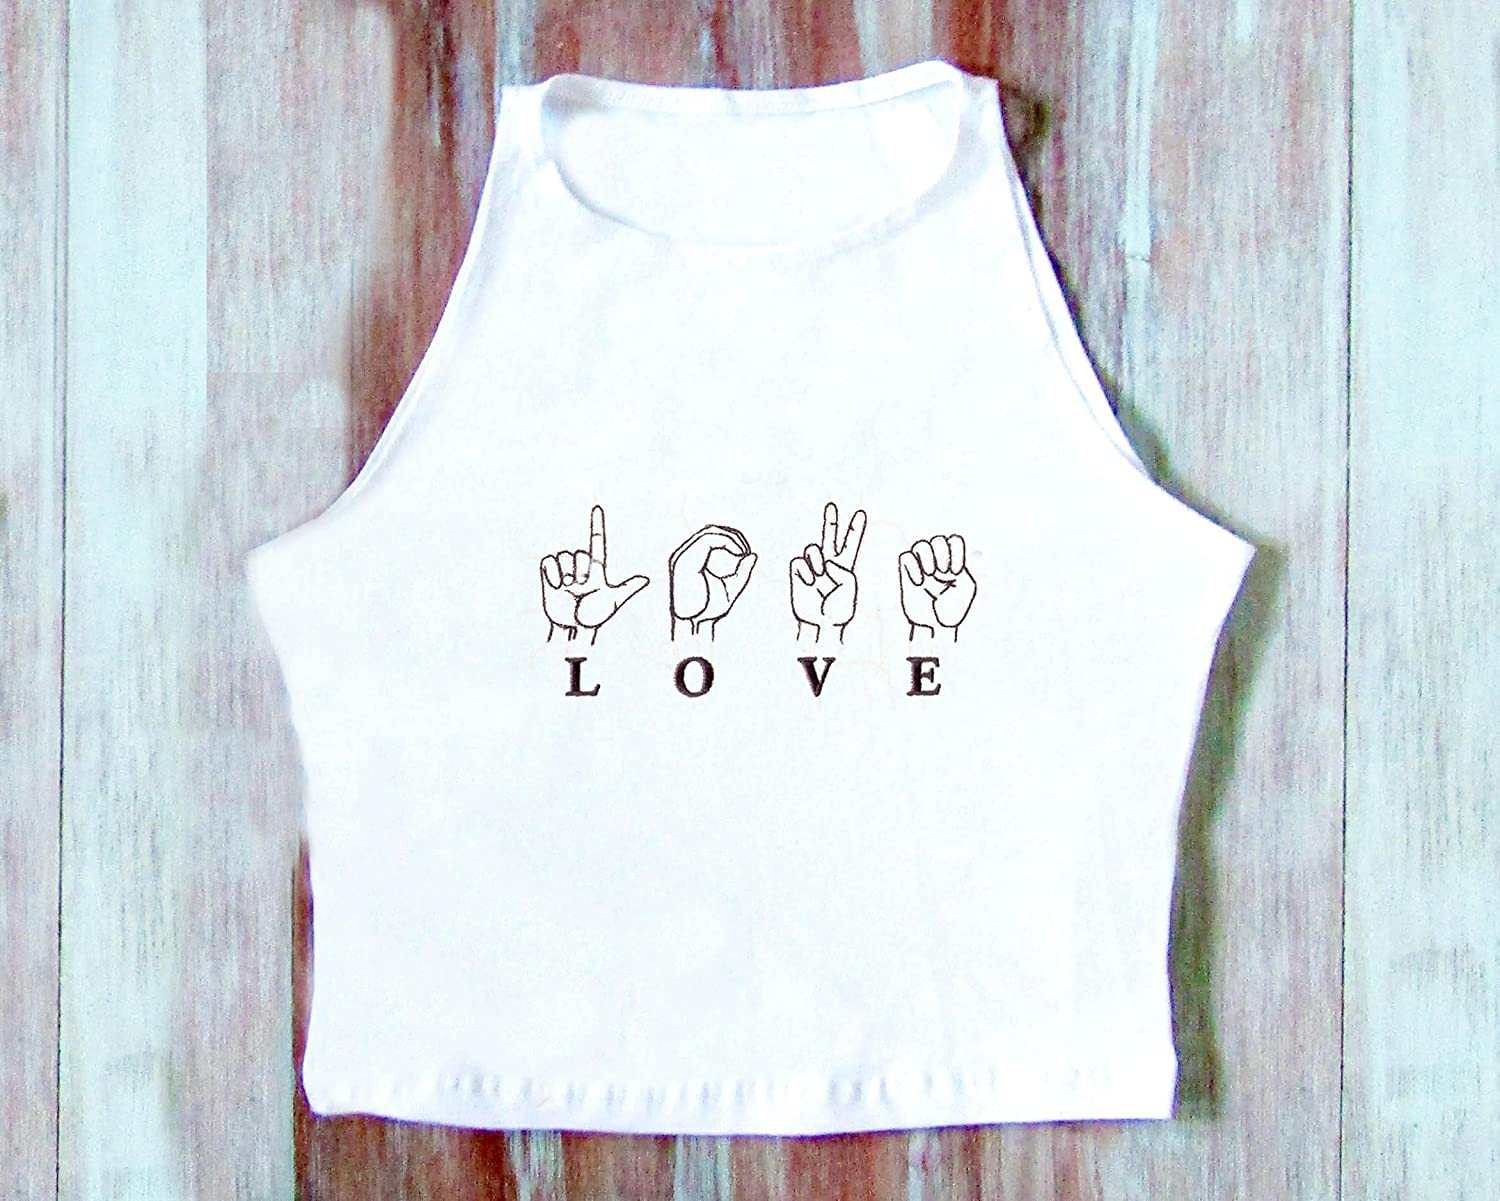 Love outlet Sign Crop Top-Hipster Top-Festival Top Virginia Beach Mall